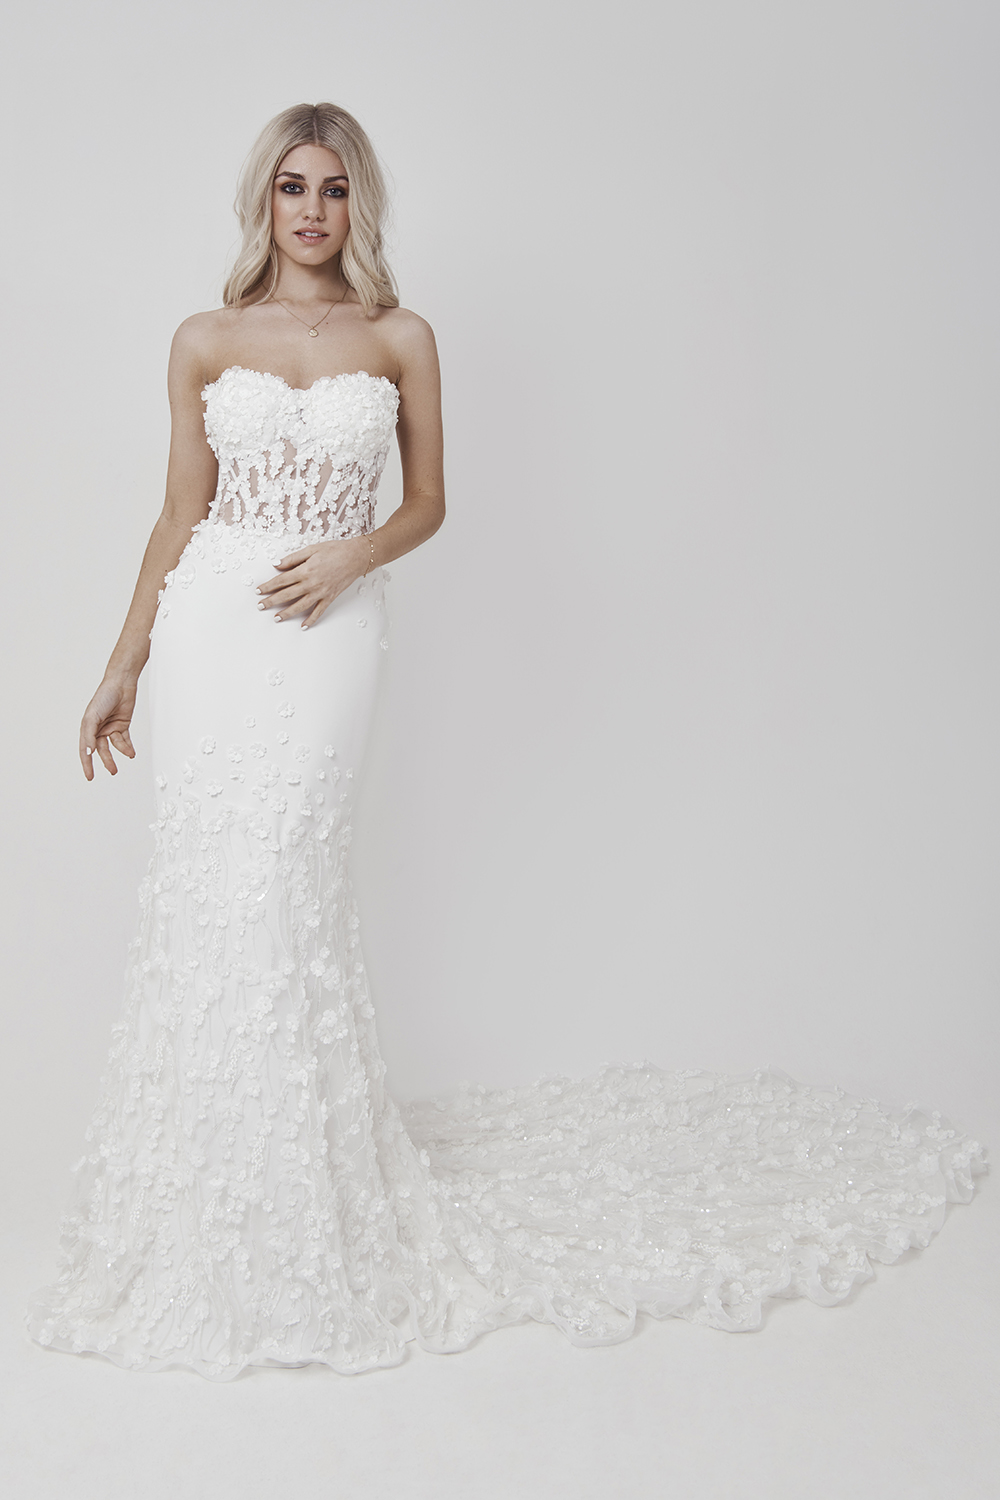 made-to-measure 'Celine' dress by Mirka Bridal Collection